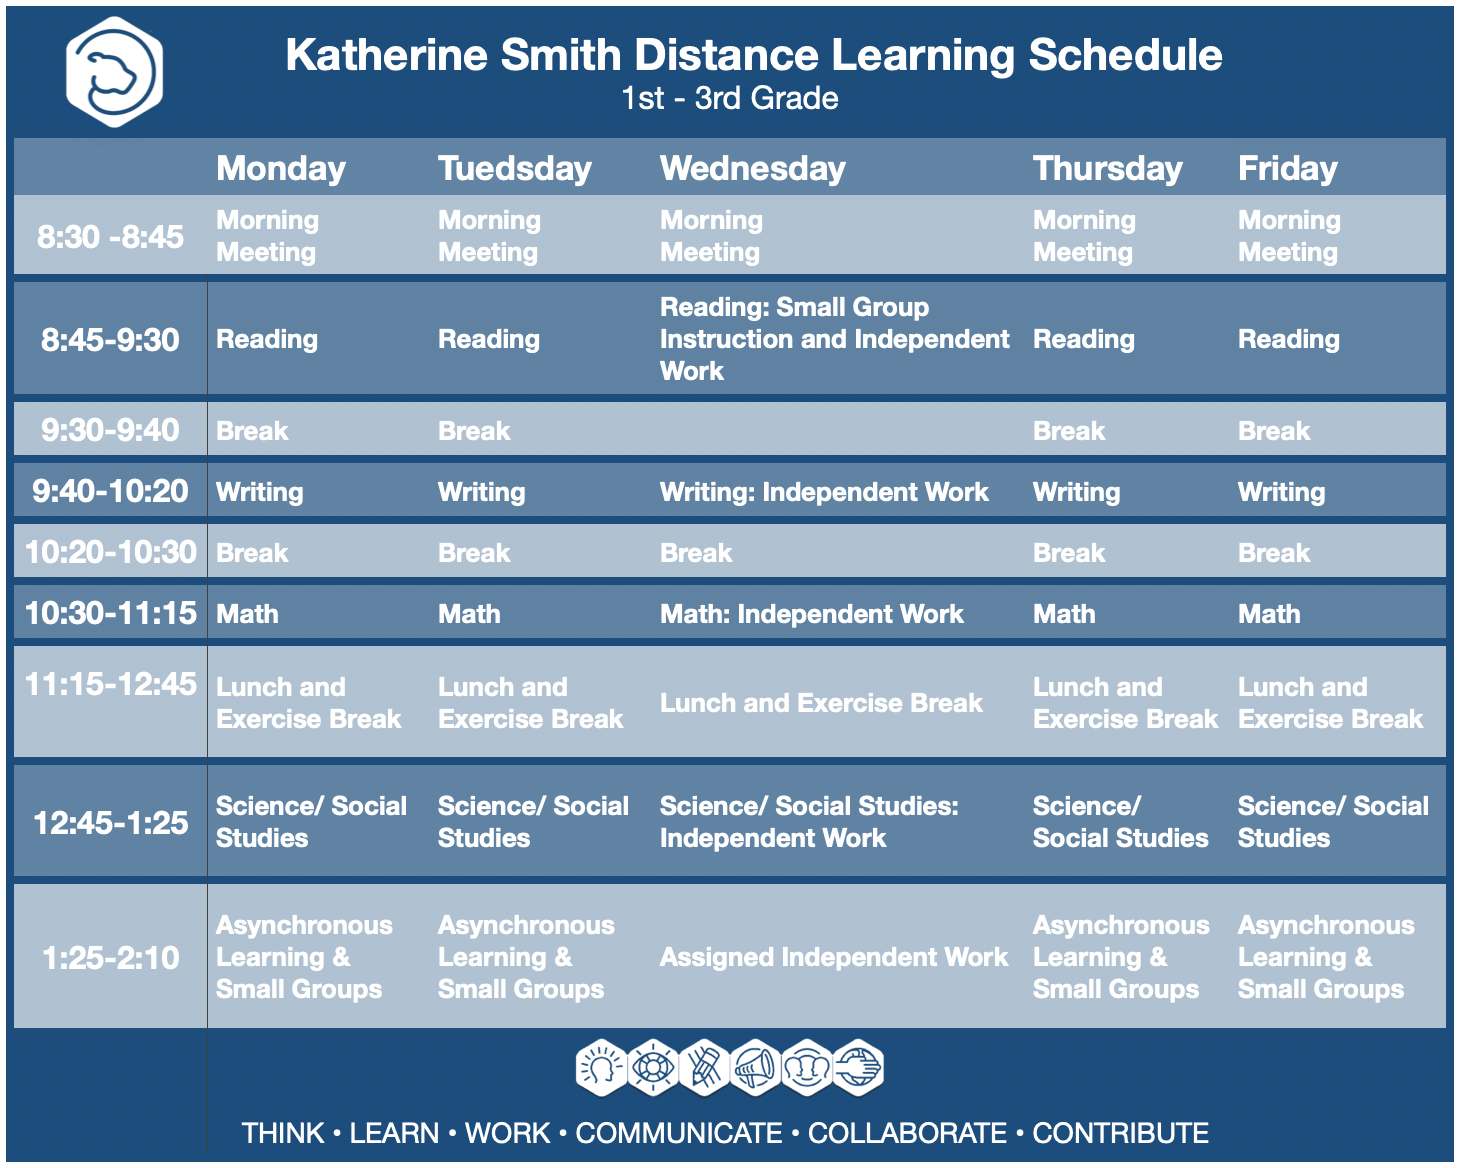 Distance Learning Schedule Grades 1-3